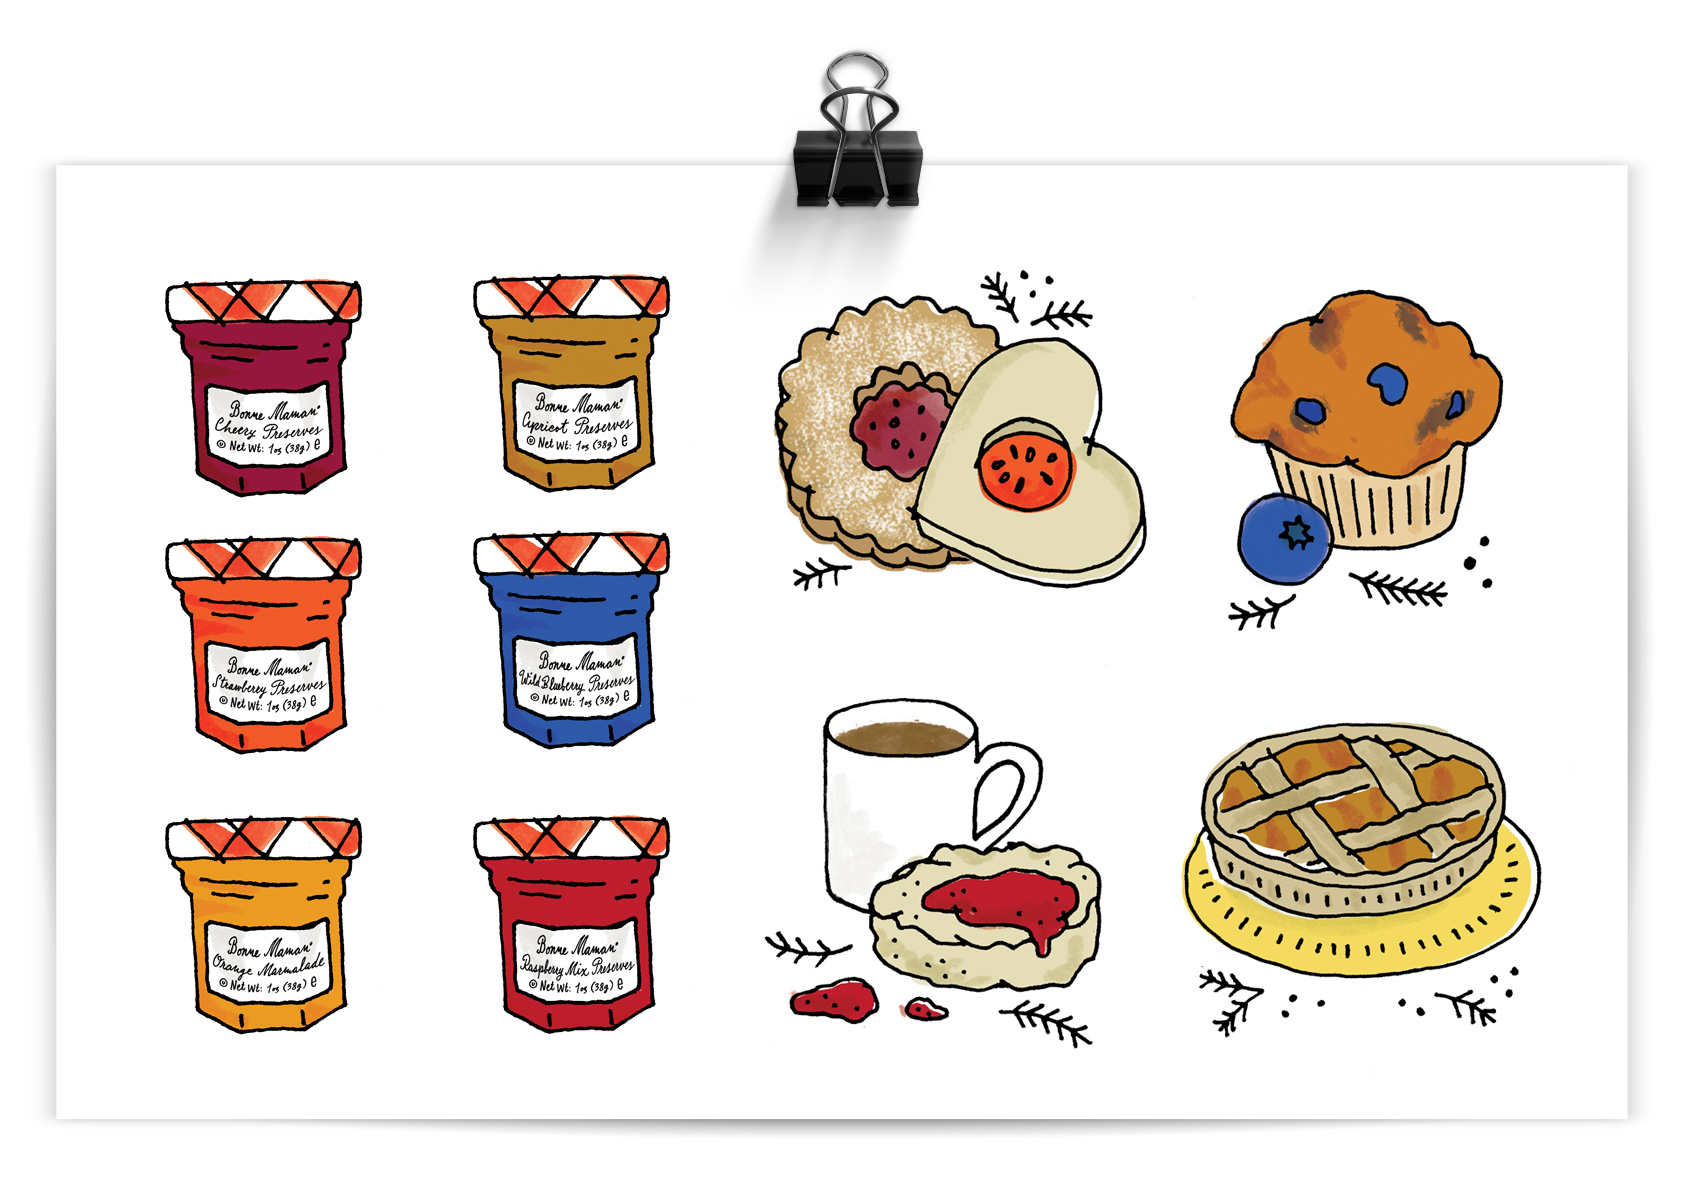 Illustrations of tiny Bonne Maman preserve jars and sweet treats they can be use for.